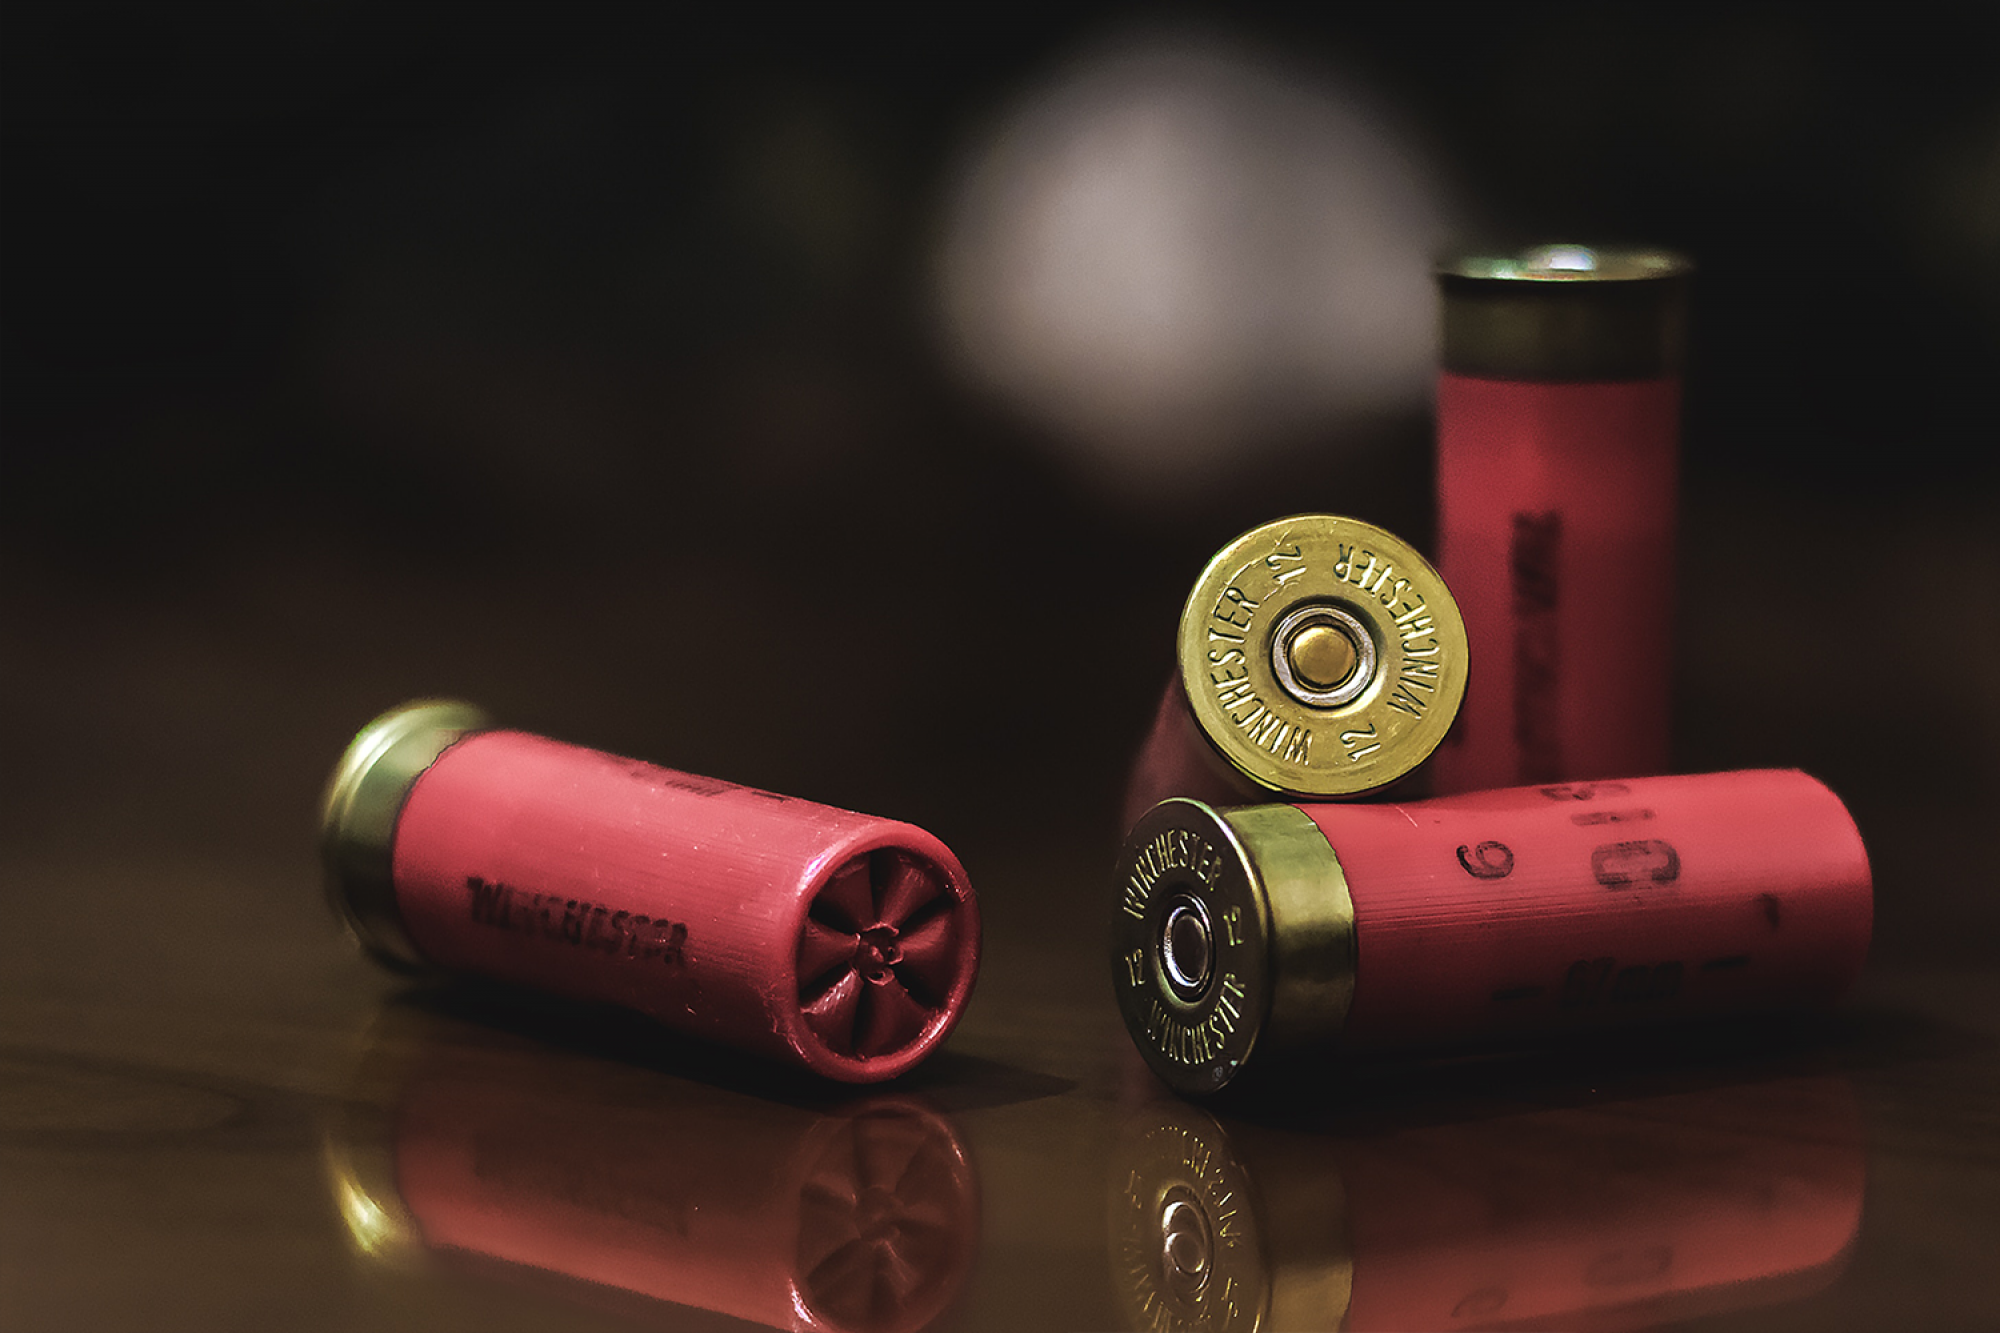 Photo of bullet casings on table